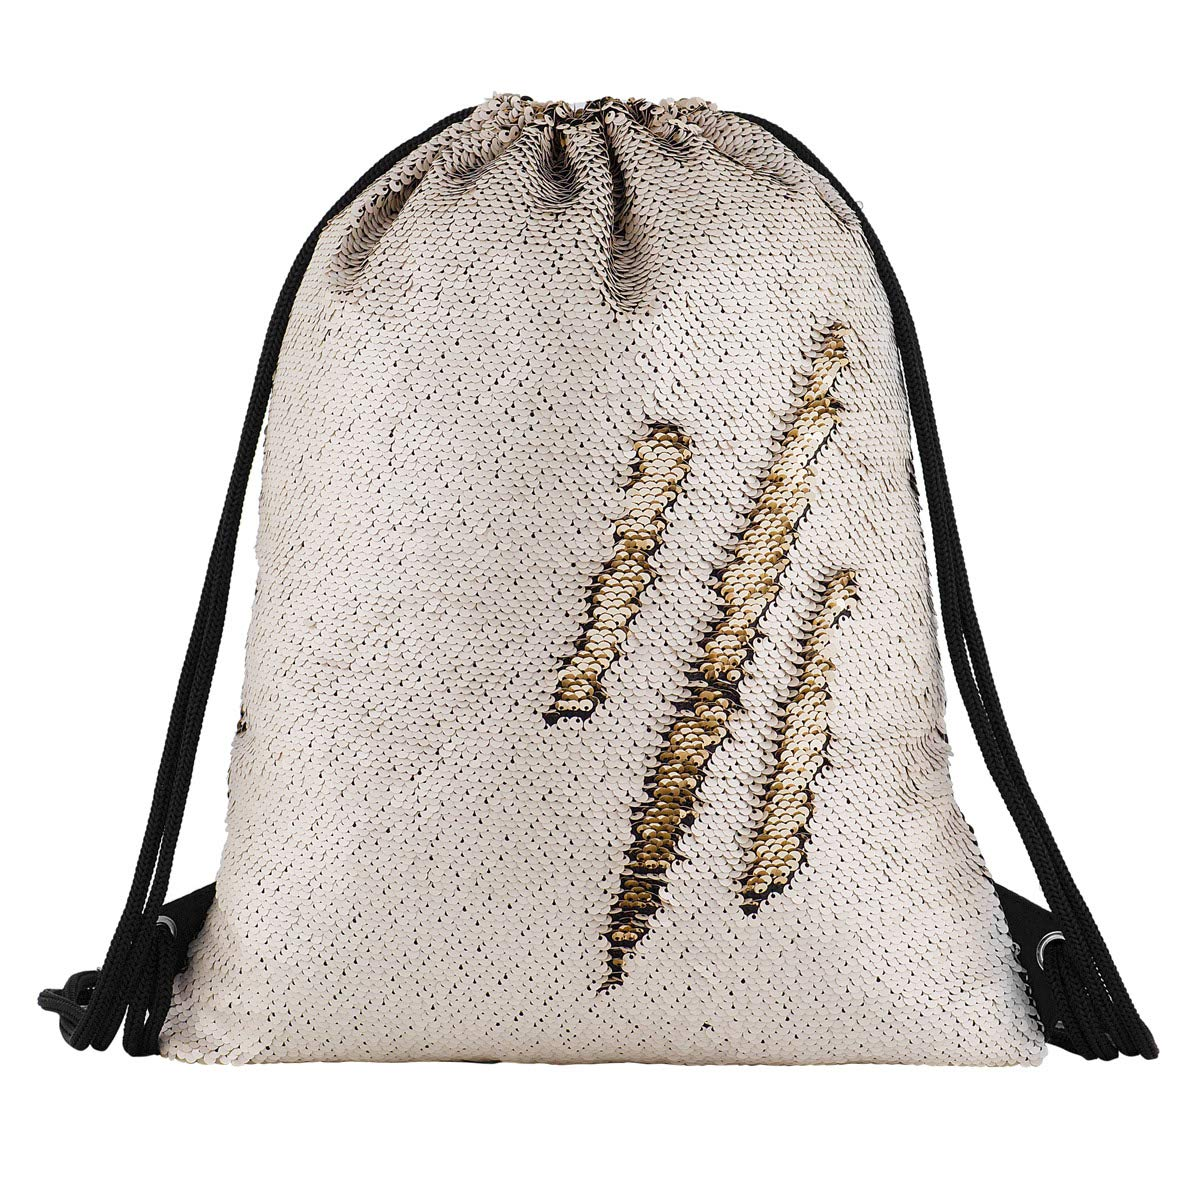 Sequin Drawstring Backpack Bag Mermaid Gym Dance Bags Magic Reversible Glitter Bag Unicorn Gift for Girls Daughter Boy Flip Sequin School Bag Birthday Gift for Kids Teen Women Segorts